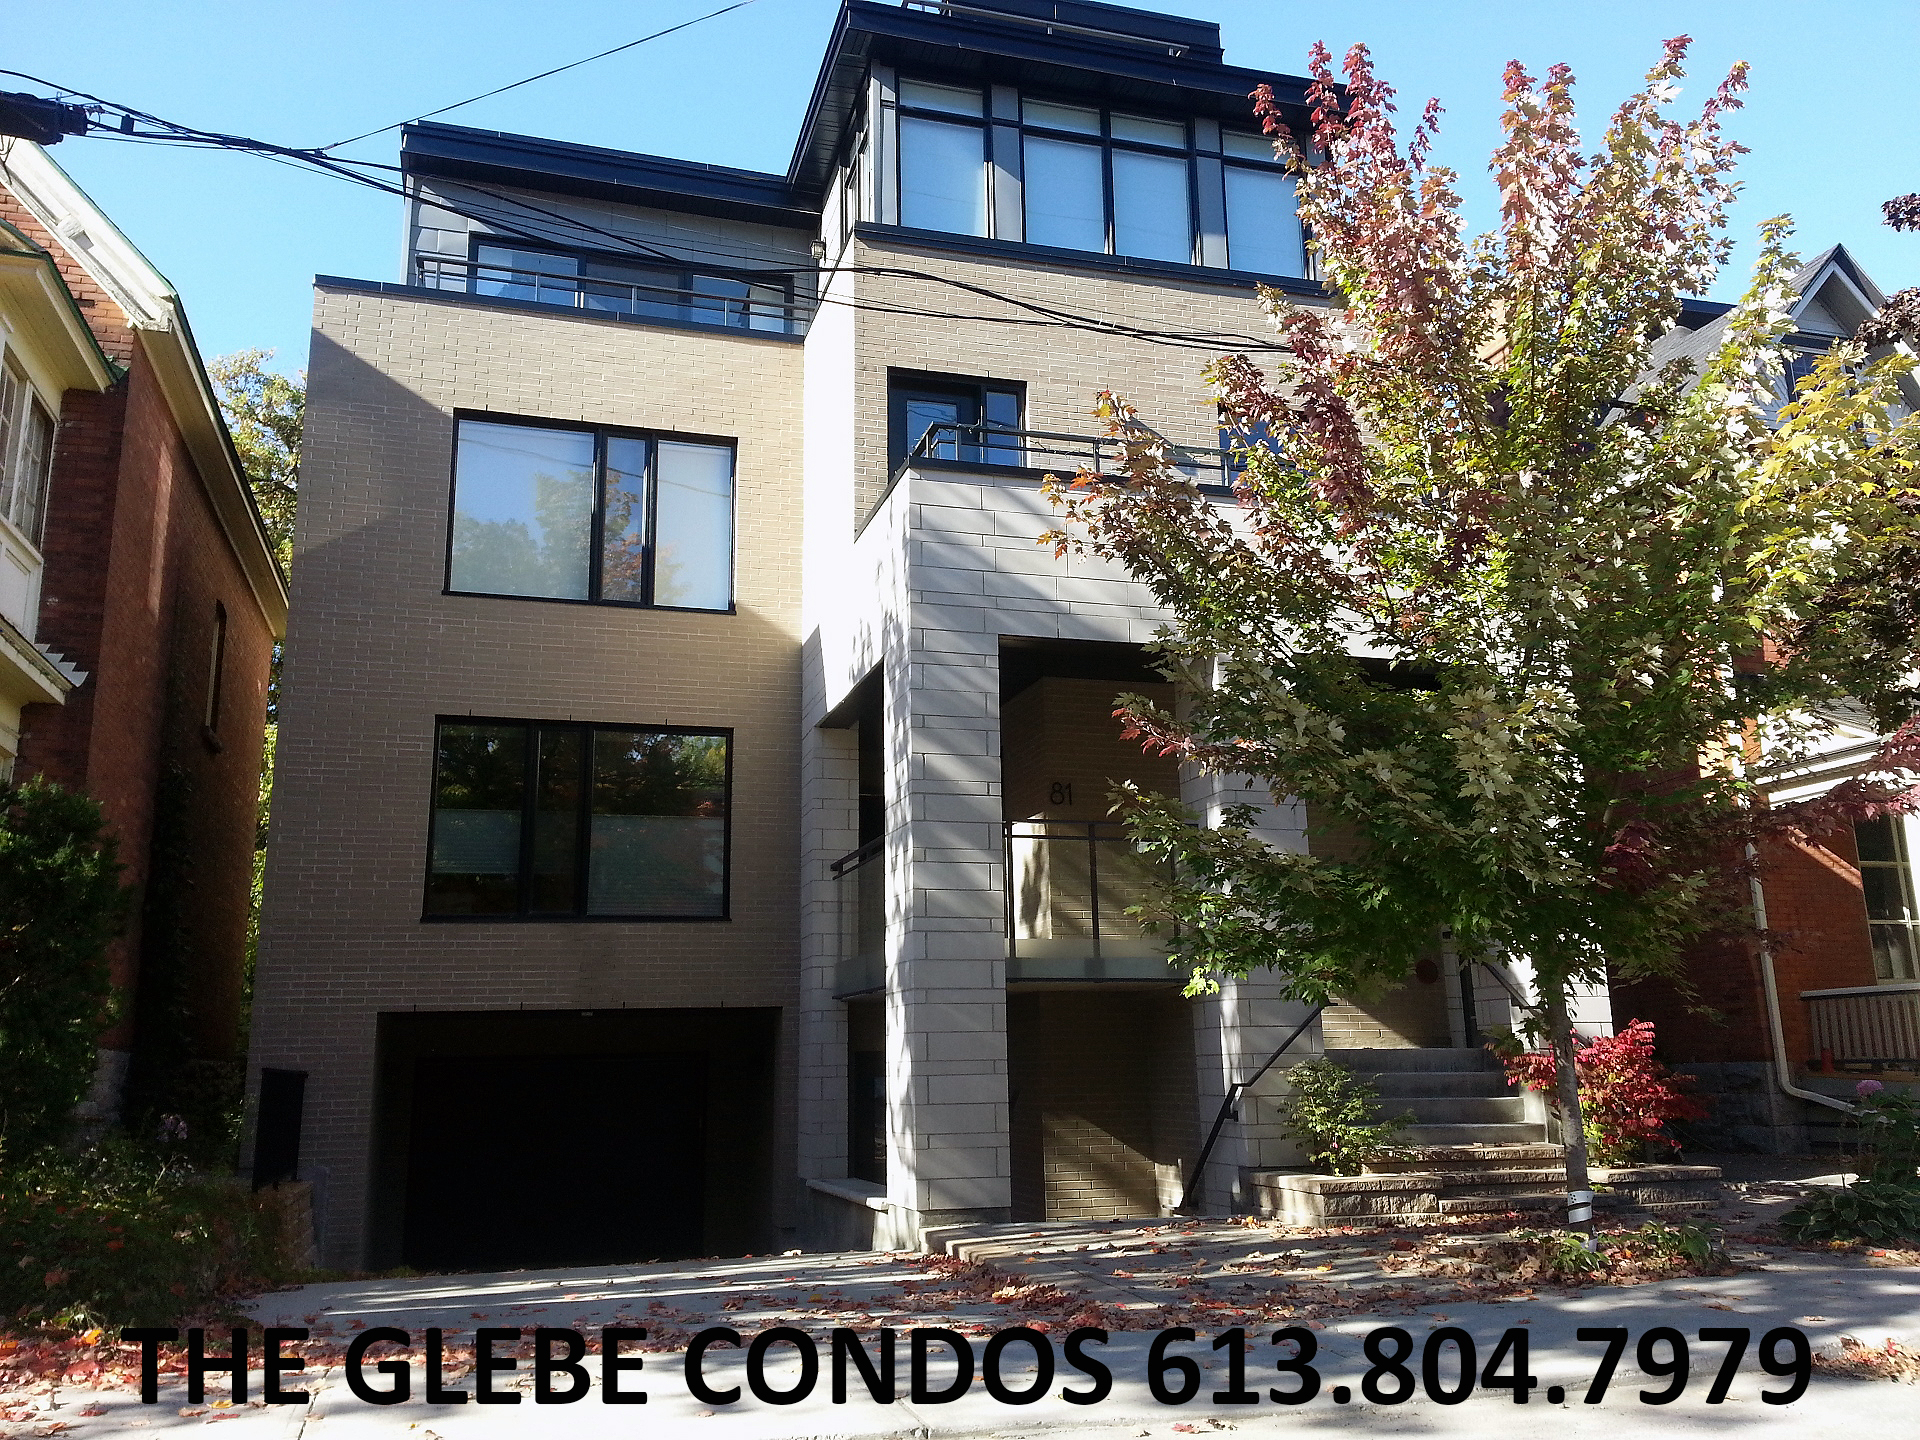 House Builders Ottawa Ottawa Condos For Sale The Glebe 81 Fourth Avenue